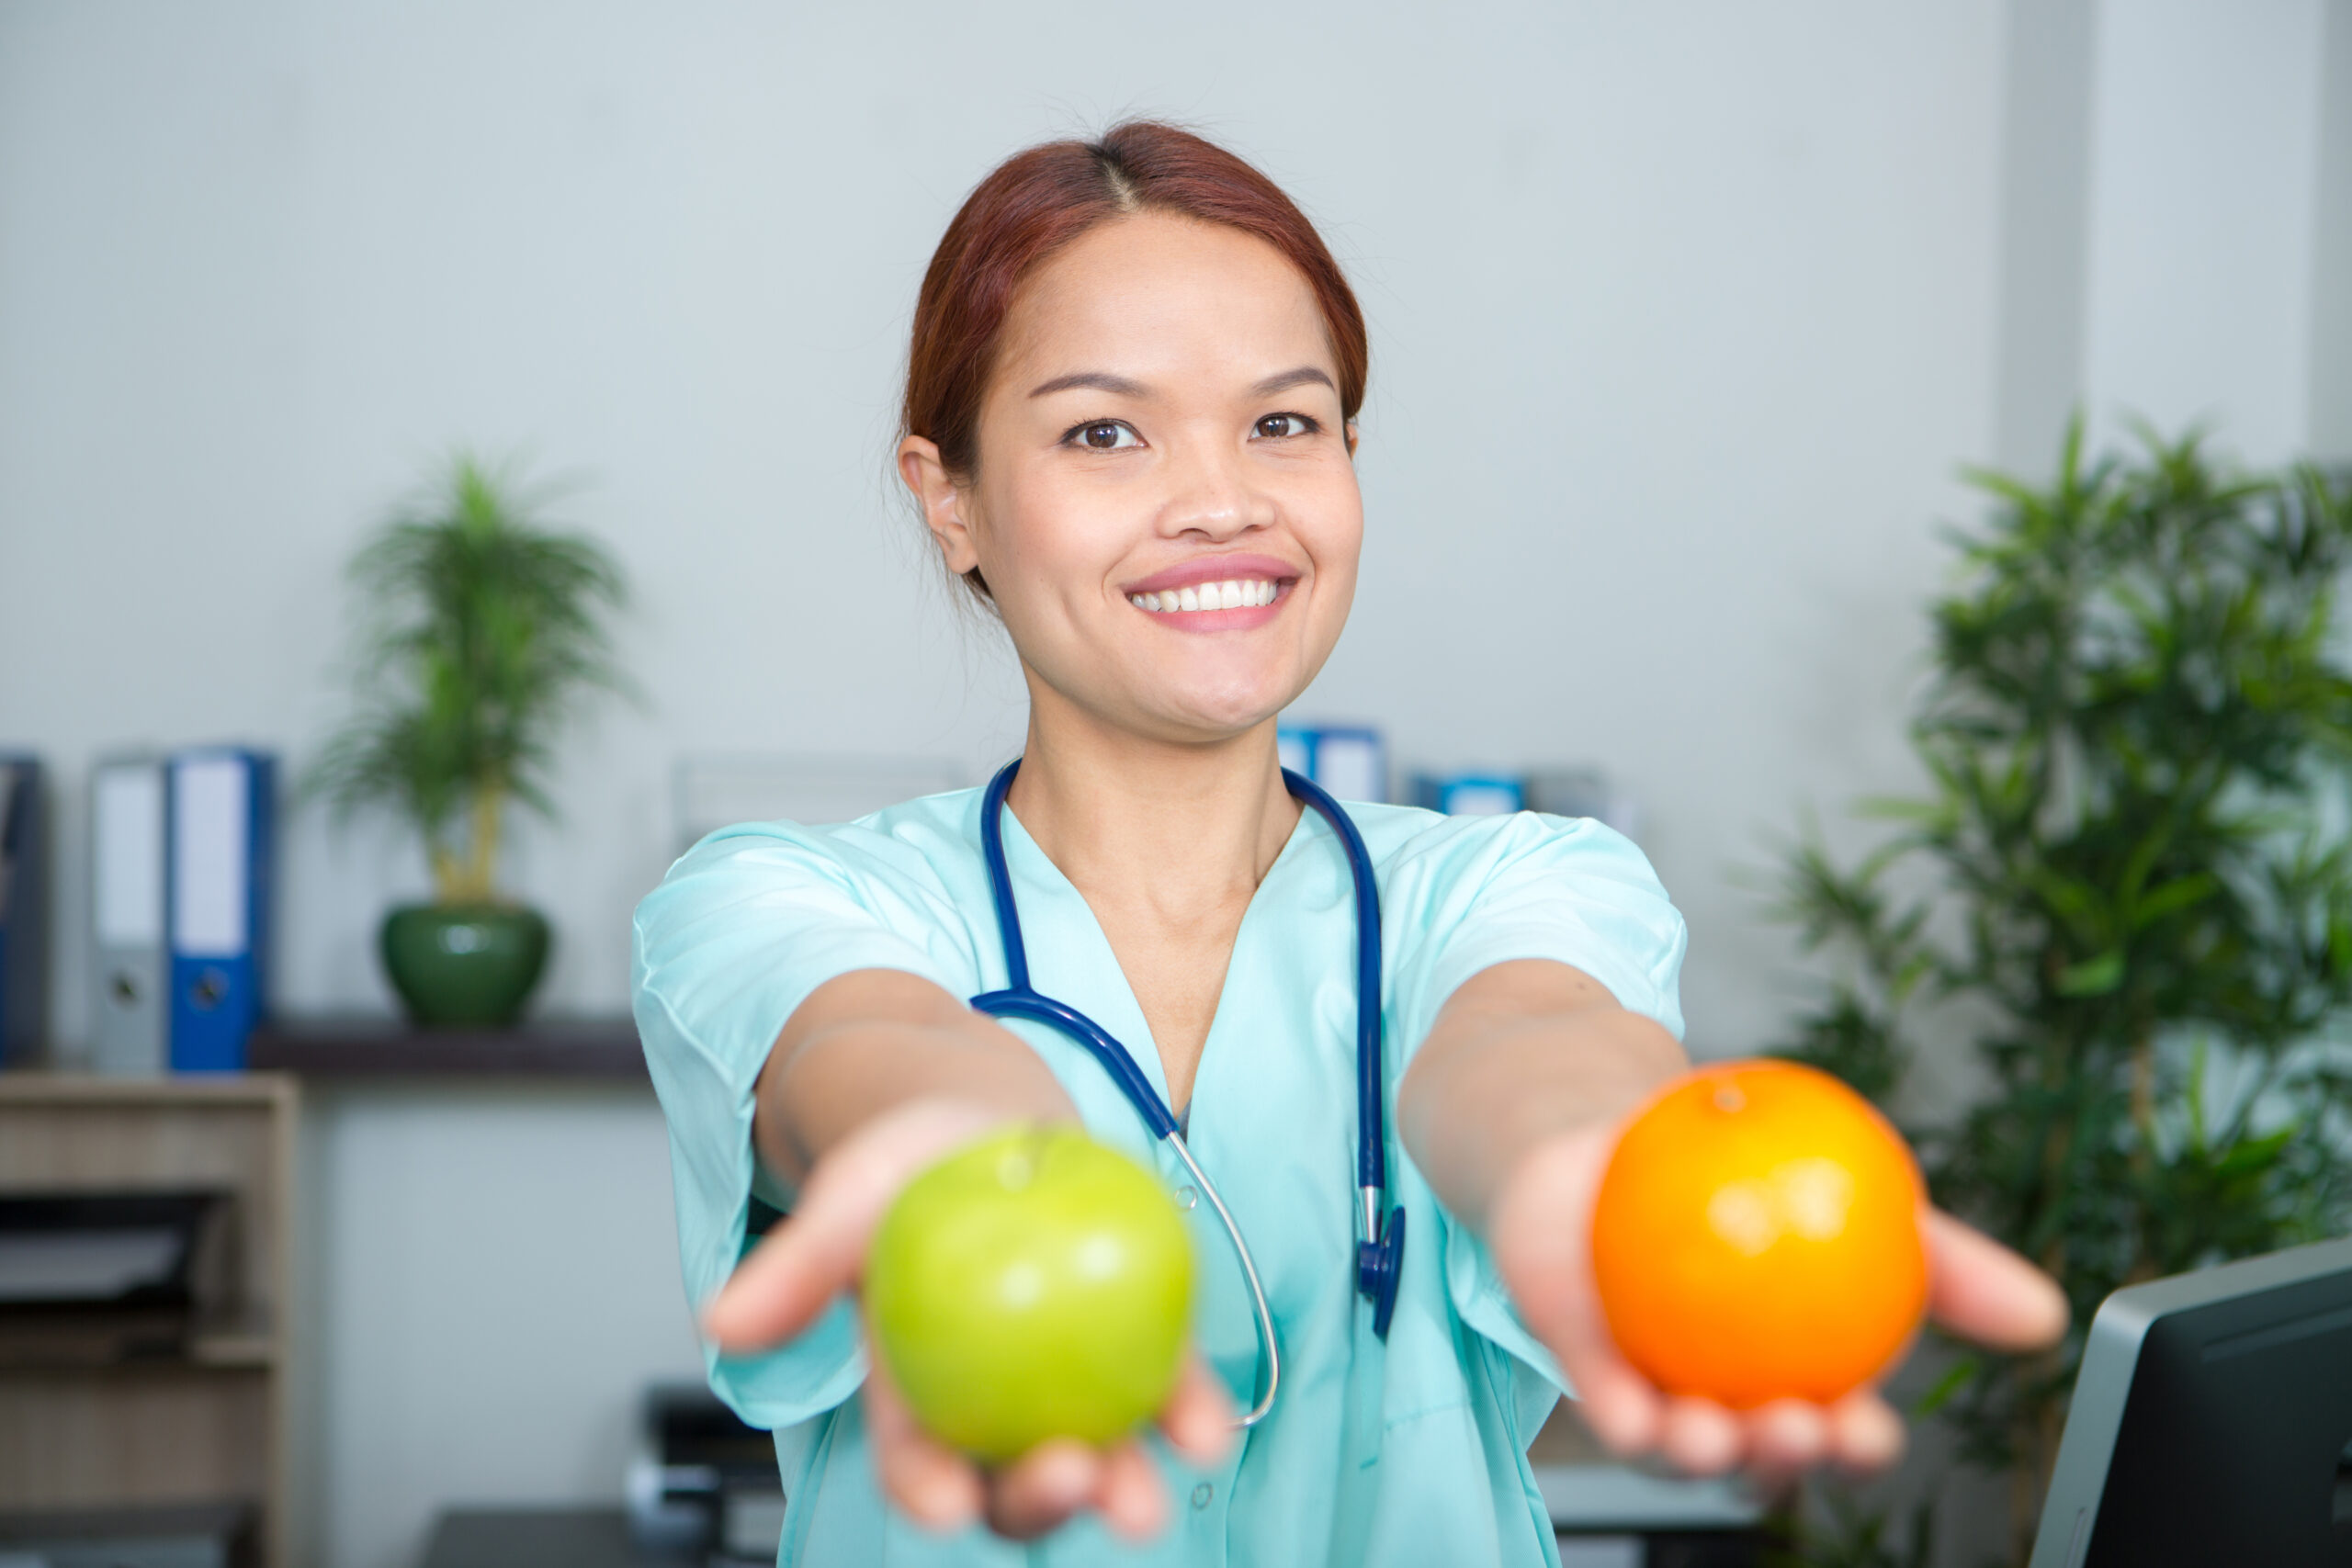 a female doctor holding apple and orange